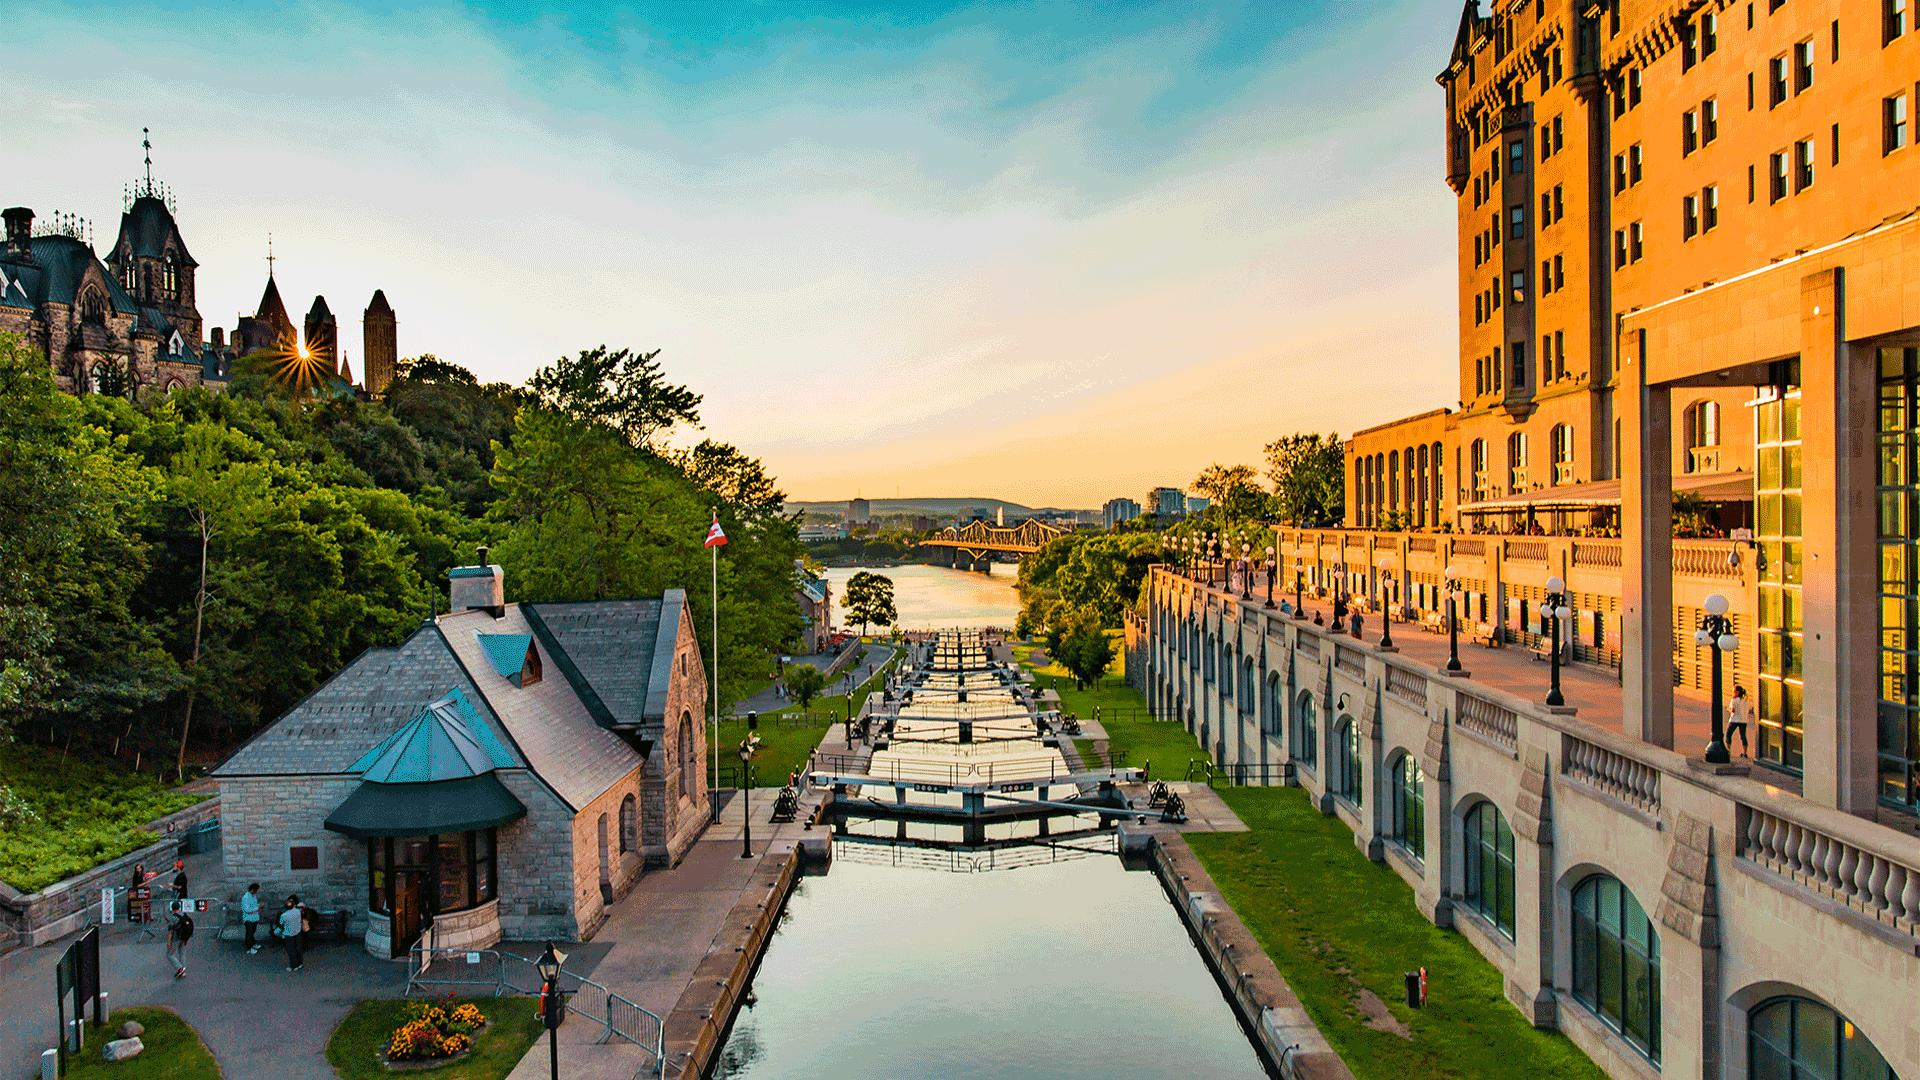 The best things to eat and do in Ottawa | The canal locks at sunset